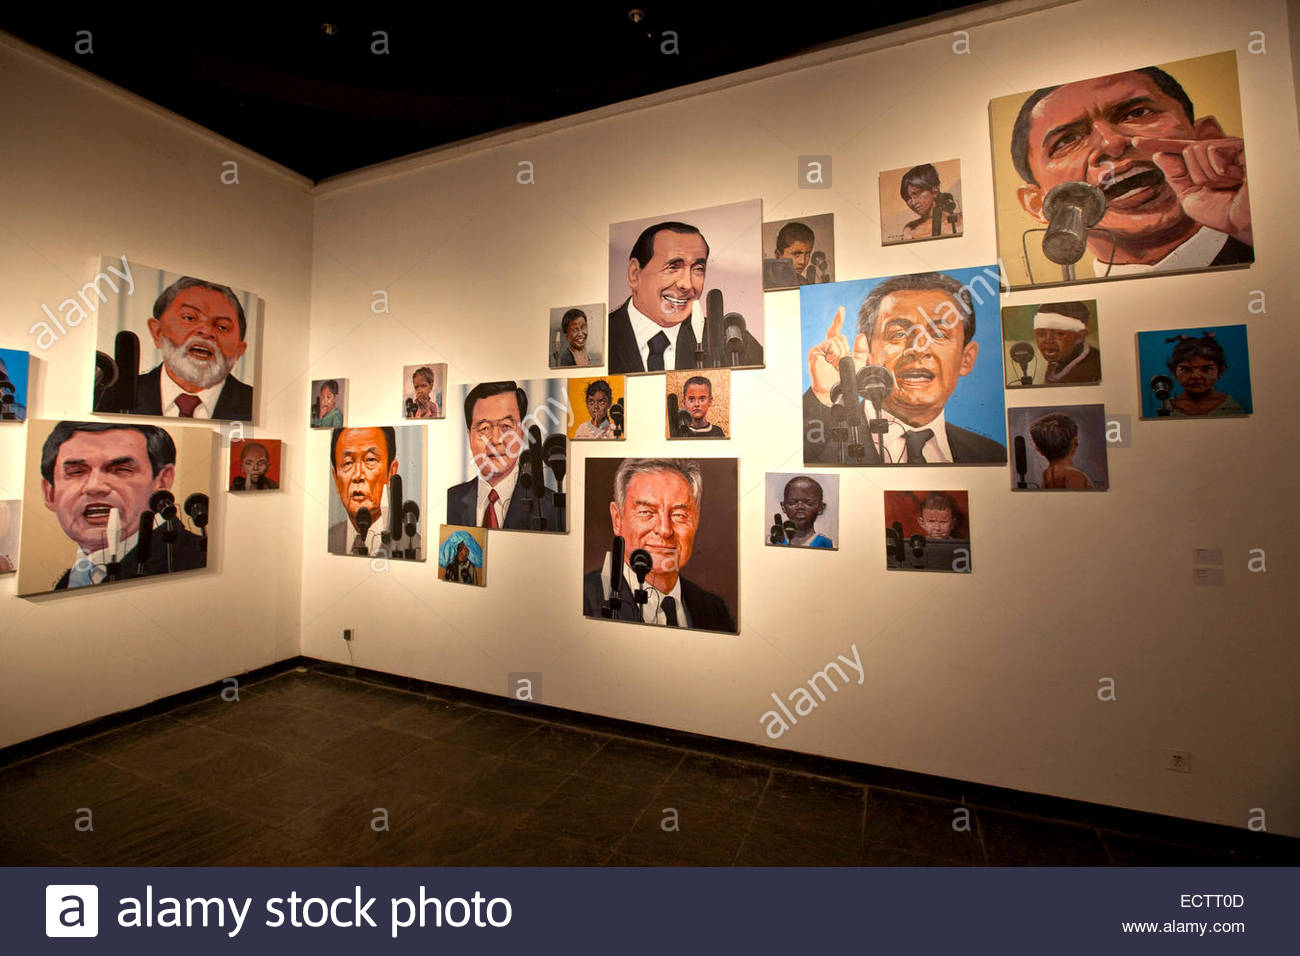 Shanghai, Portraits of world political leaders, paintings by Mao Yanyang. - Stock Image